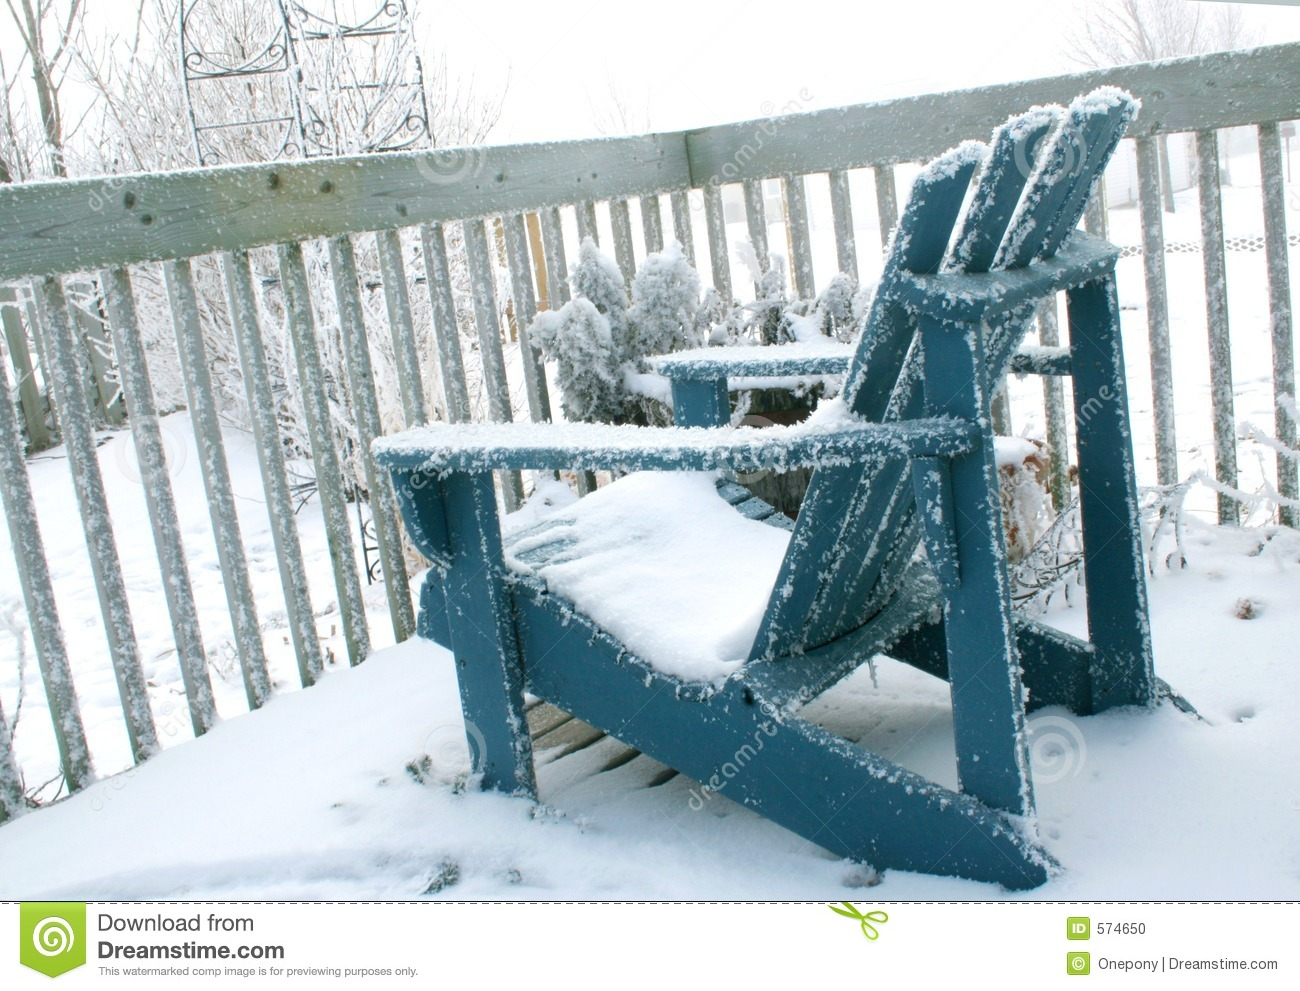 Deck Chair in Winter